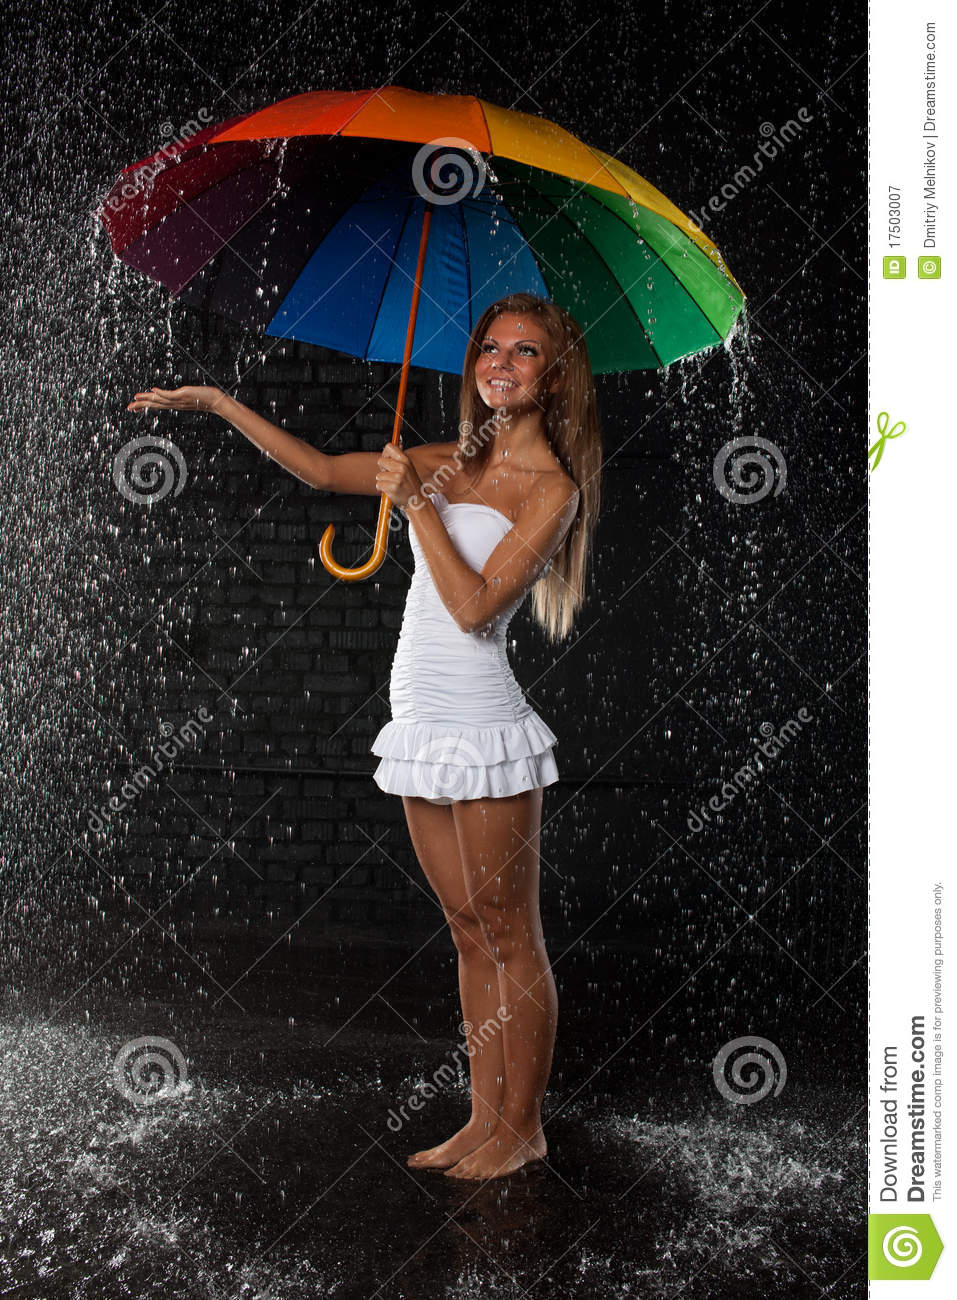 https://thumbs.dreamstime.com/z/young-woman-multi-coloured-umbrella-17503007.jpg